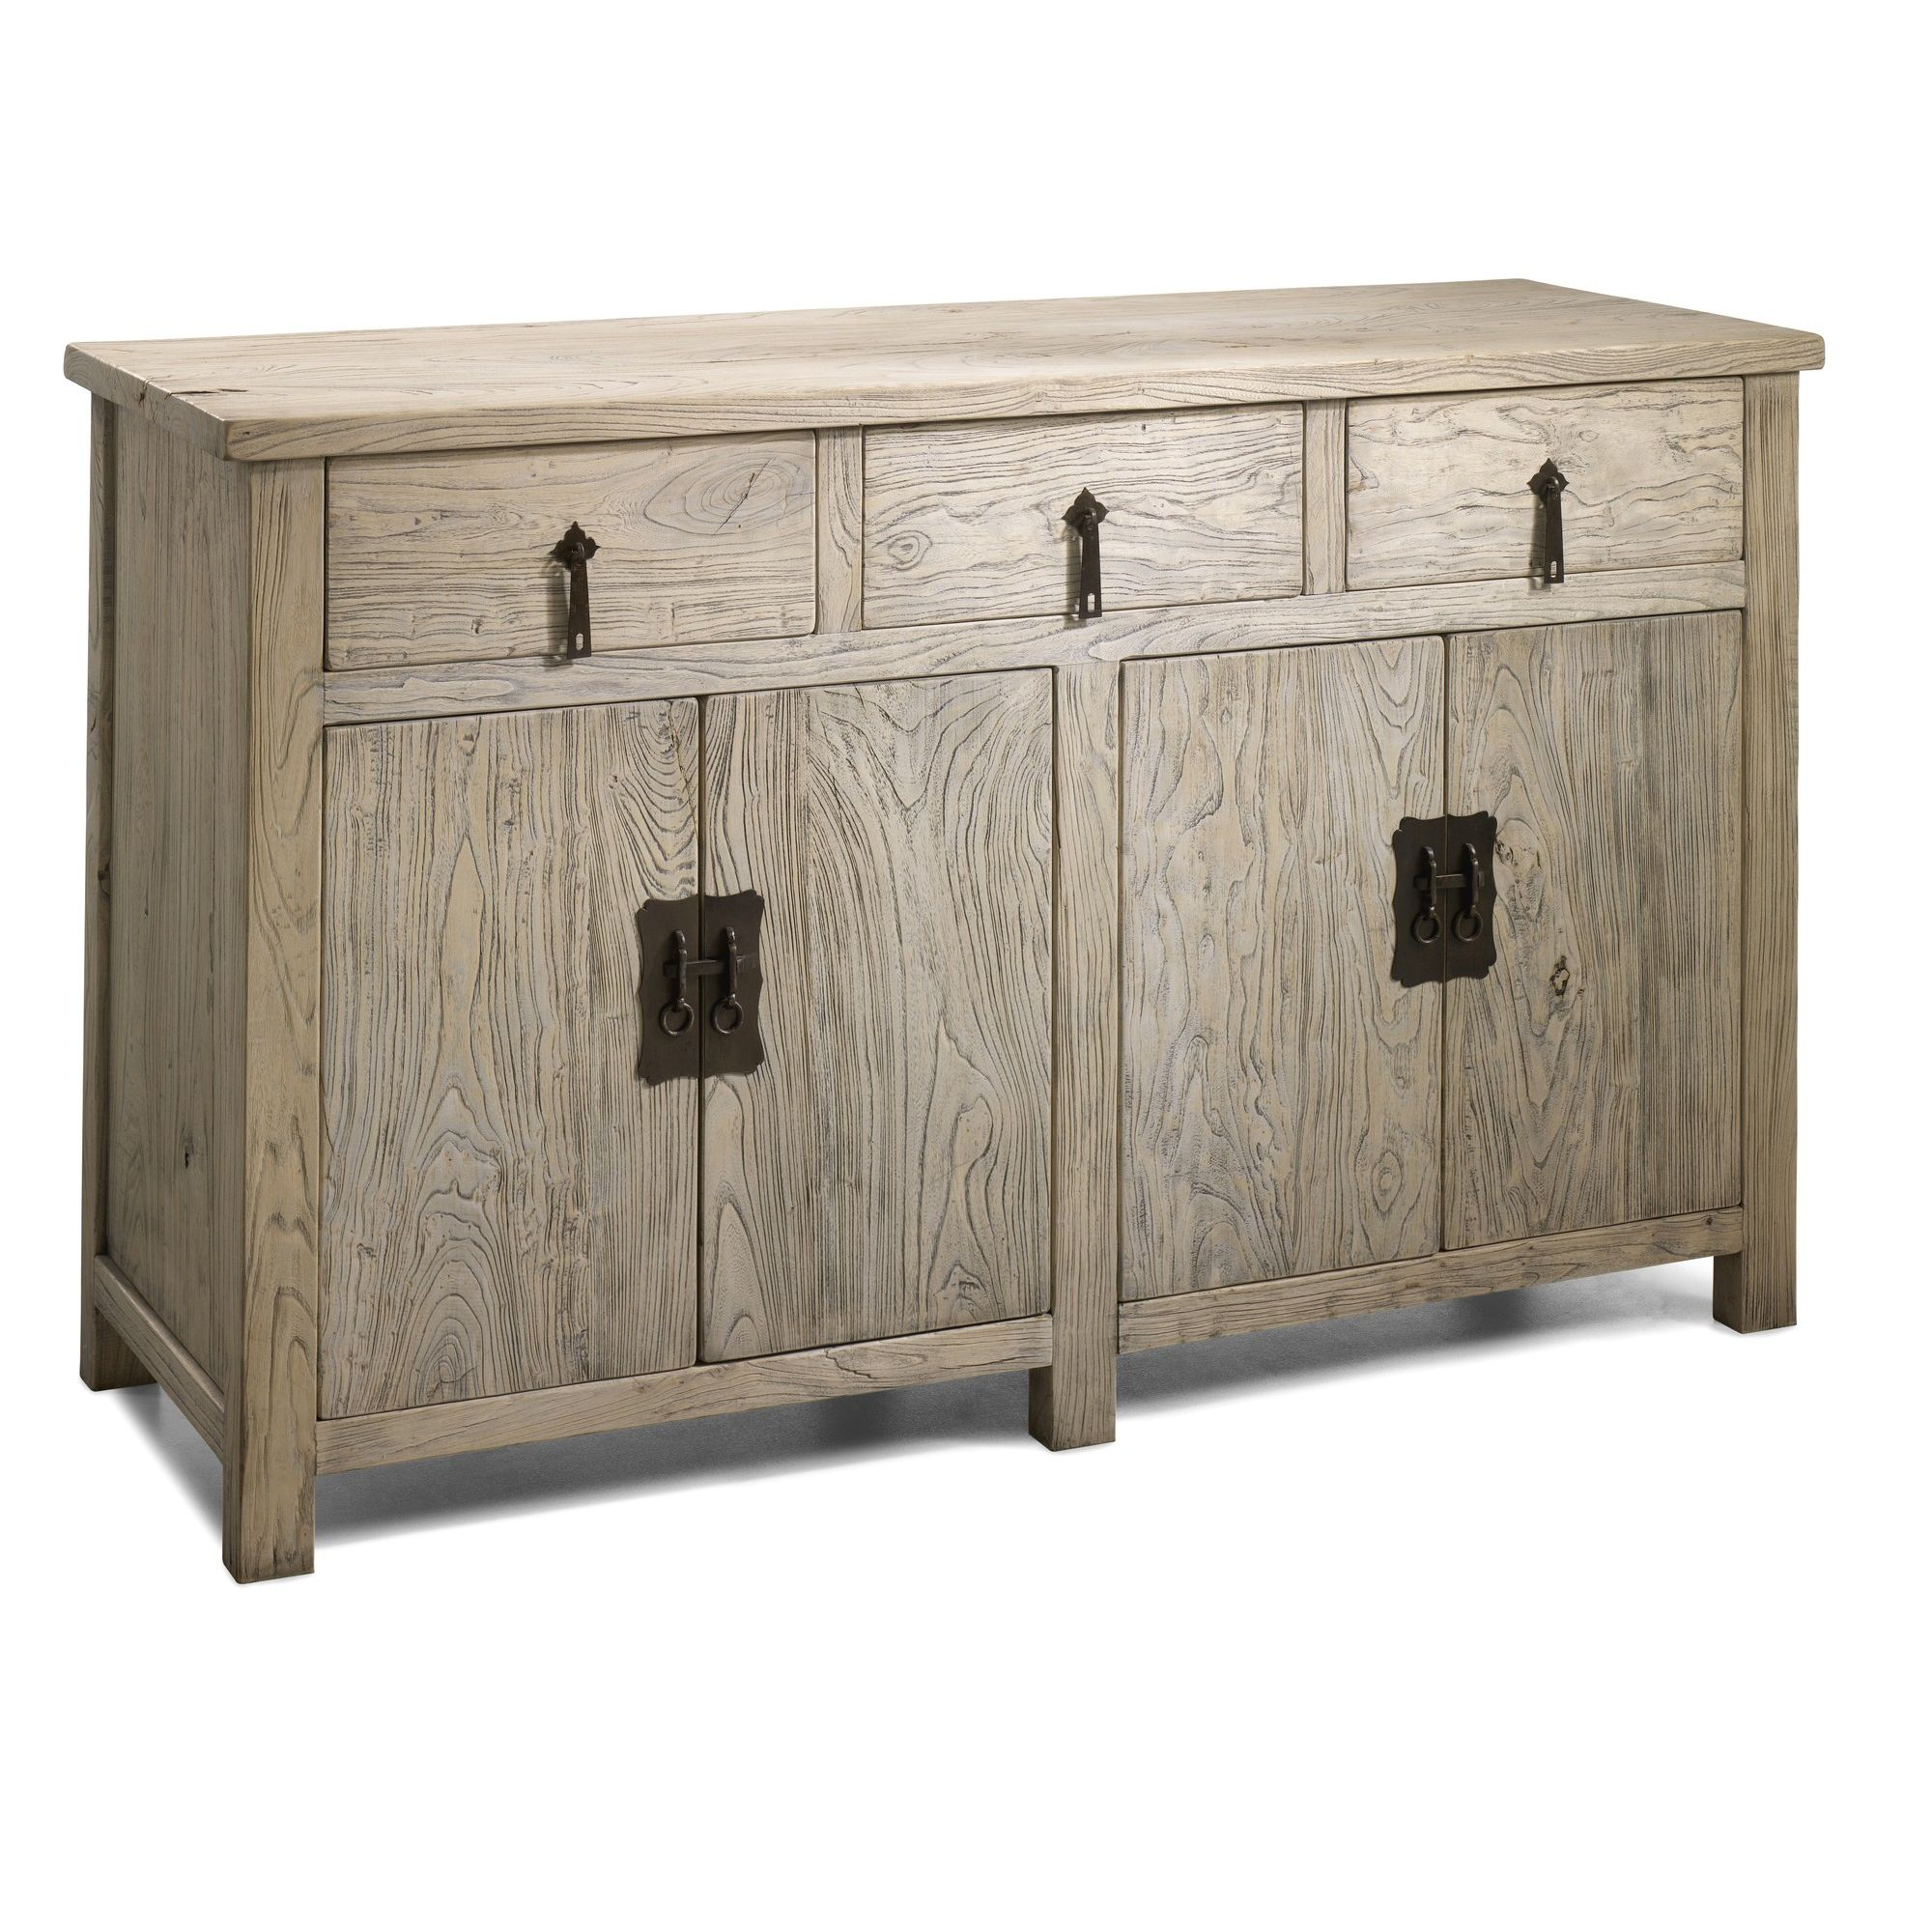 Shimu Chinese Country Furniture Four Door Sideboard at Tesco Direct